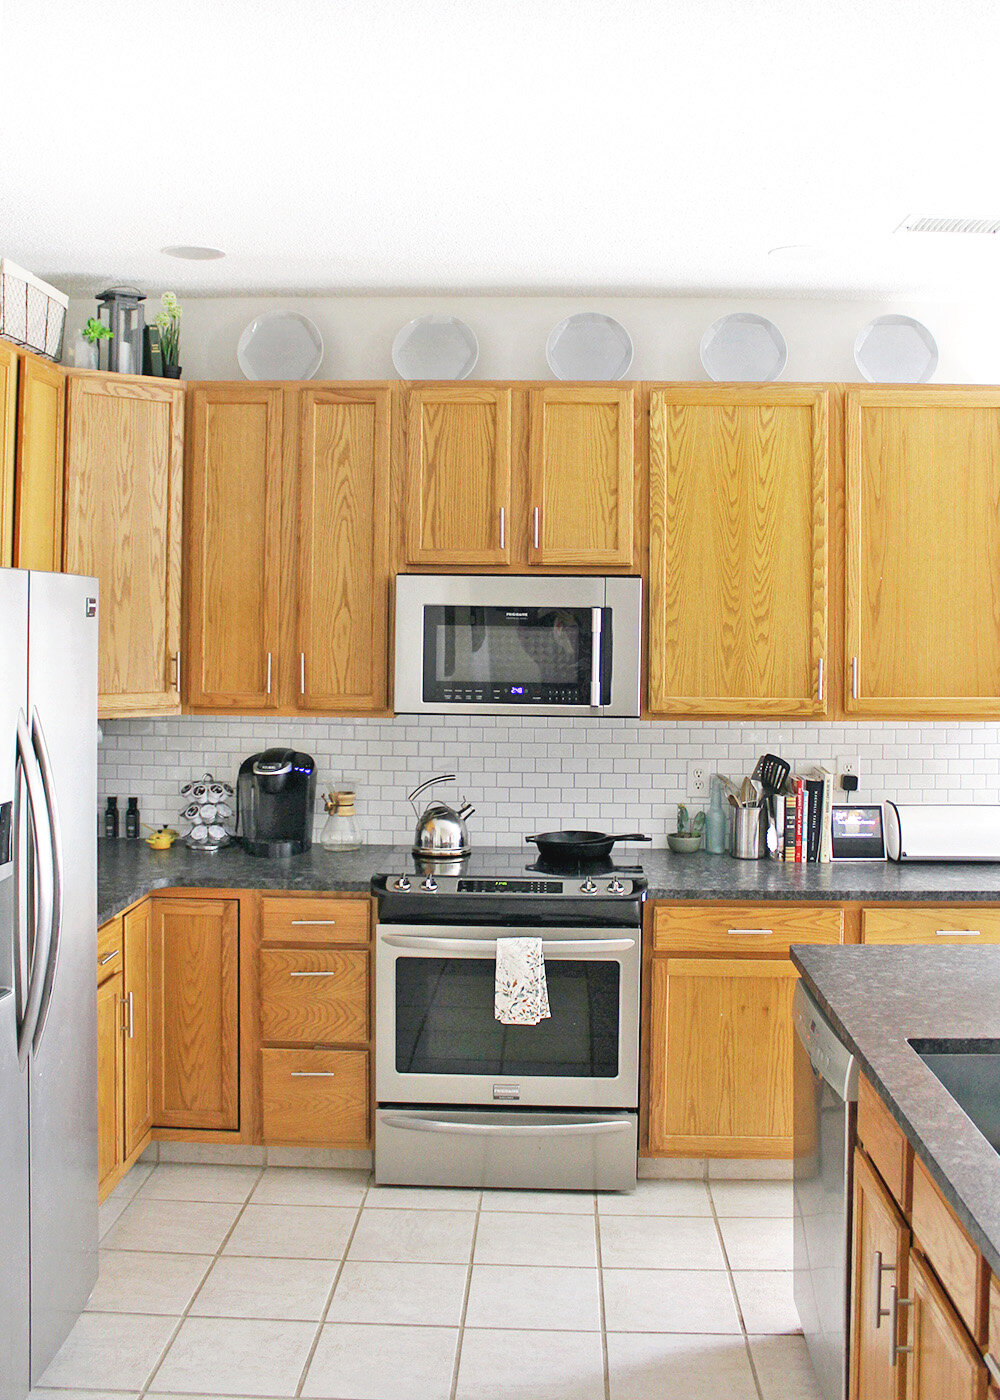 Should You Decorate Above Kitchen Cabinets  from images.squarespace-cdn.com